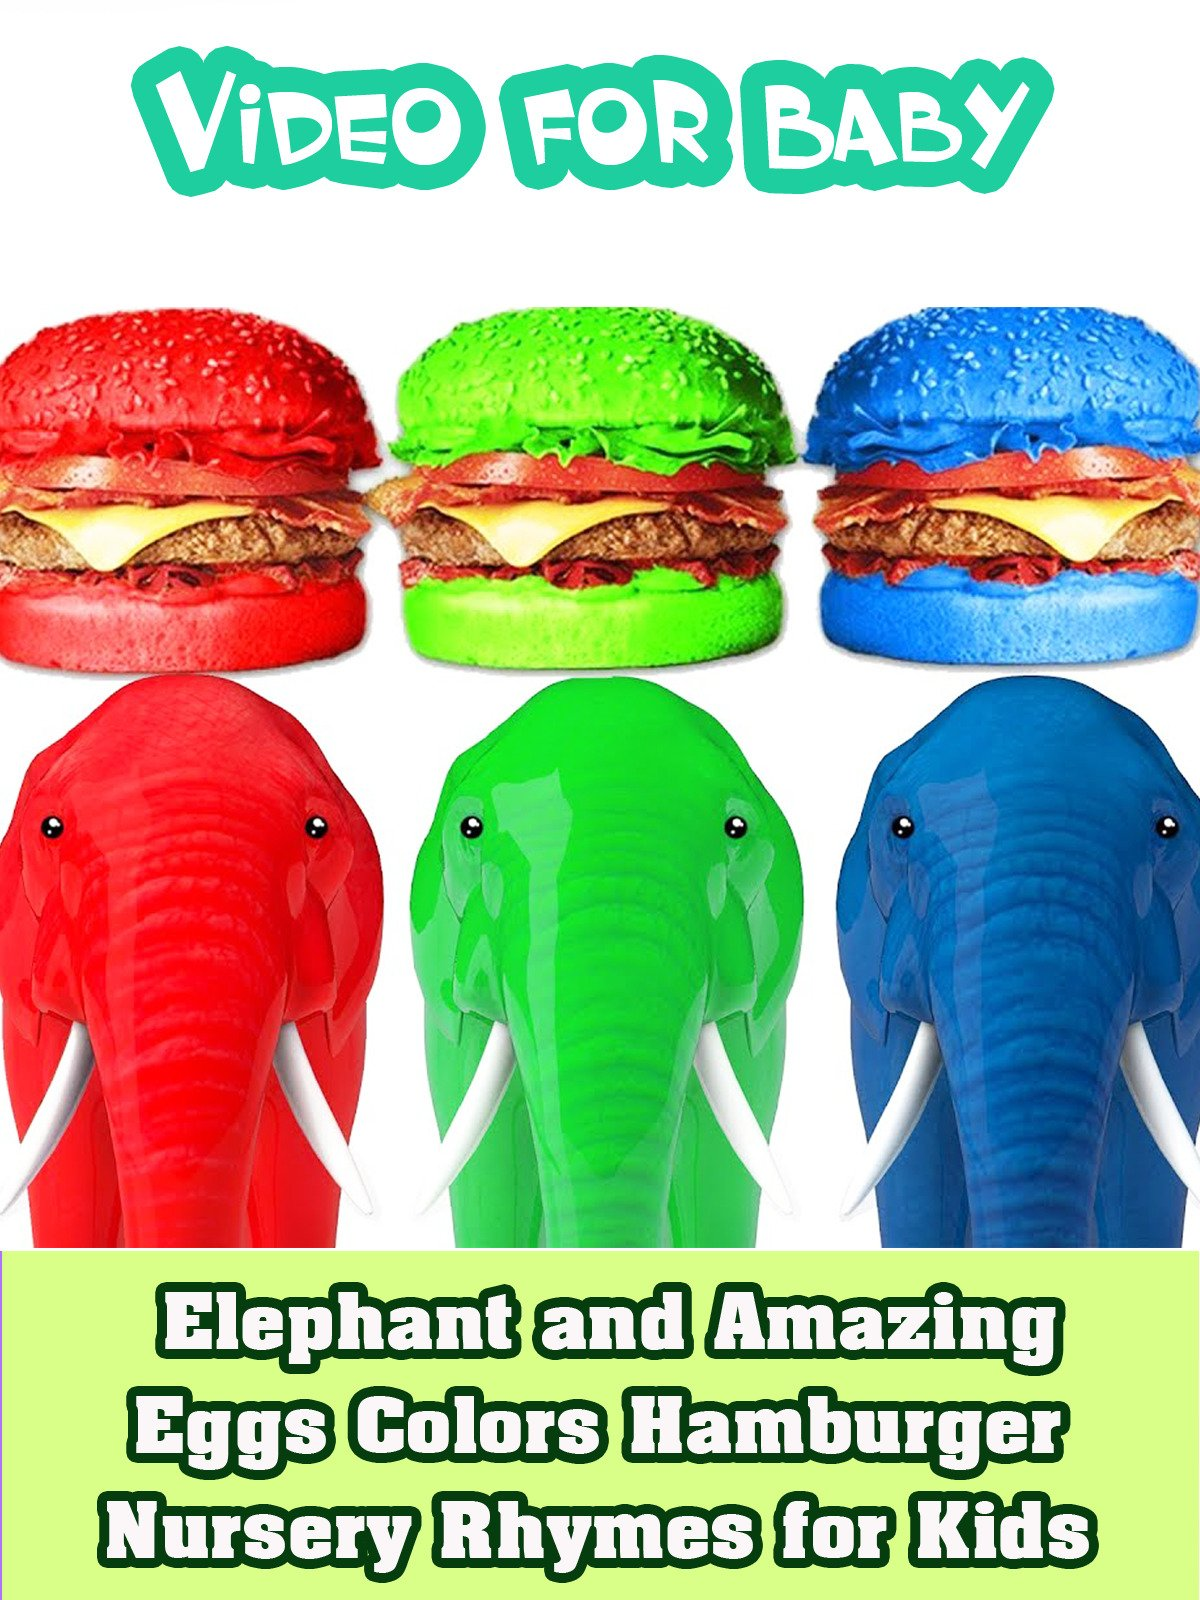 Elephant and Amazing Eggs Colors Hamburger Nursery Rhymes for Kids